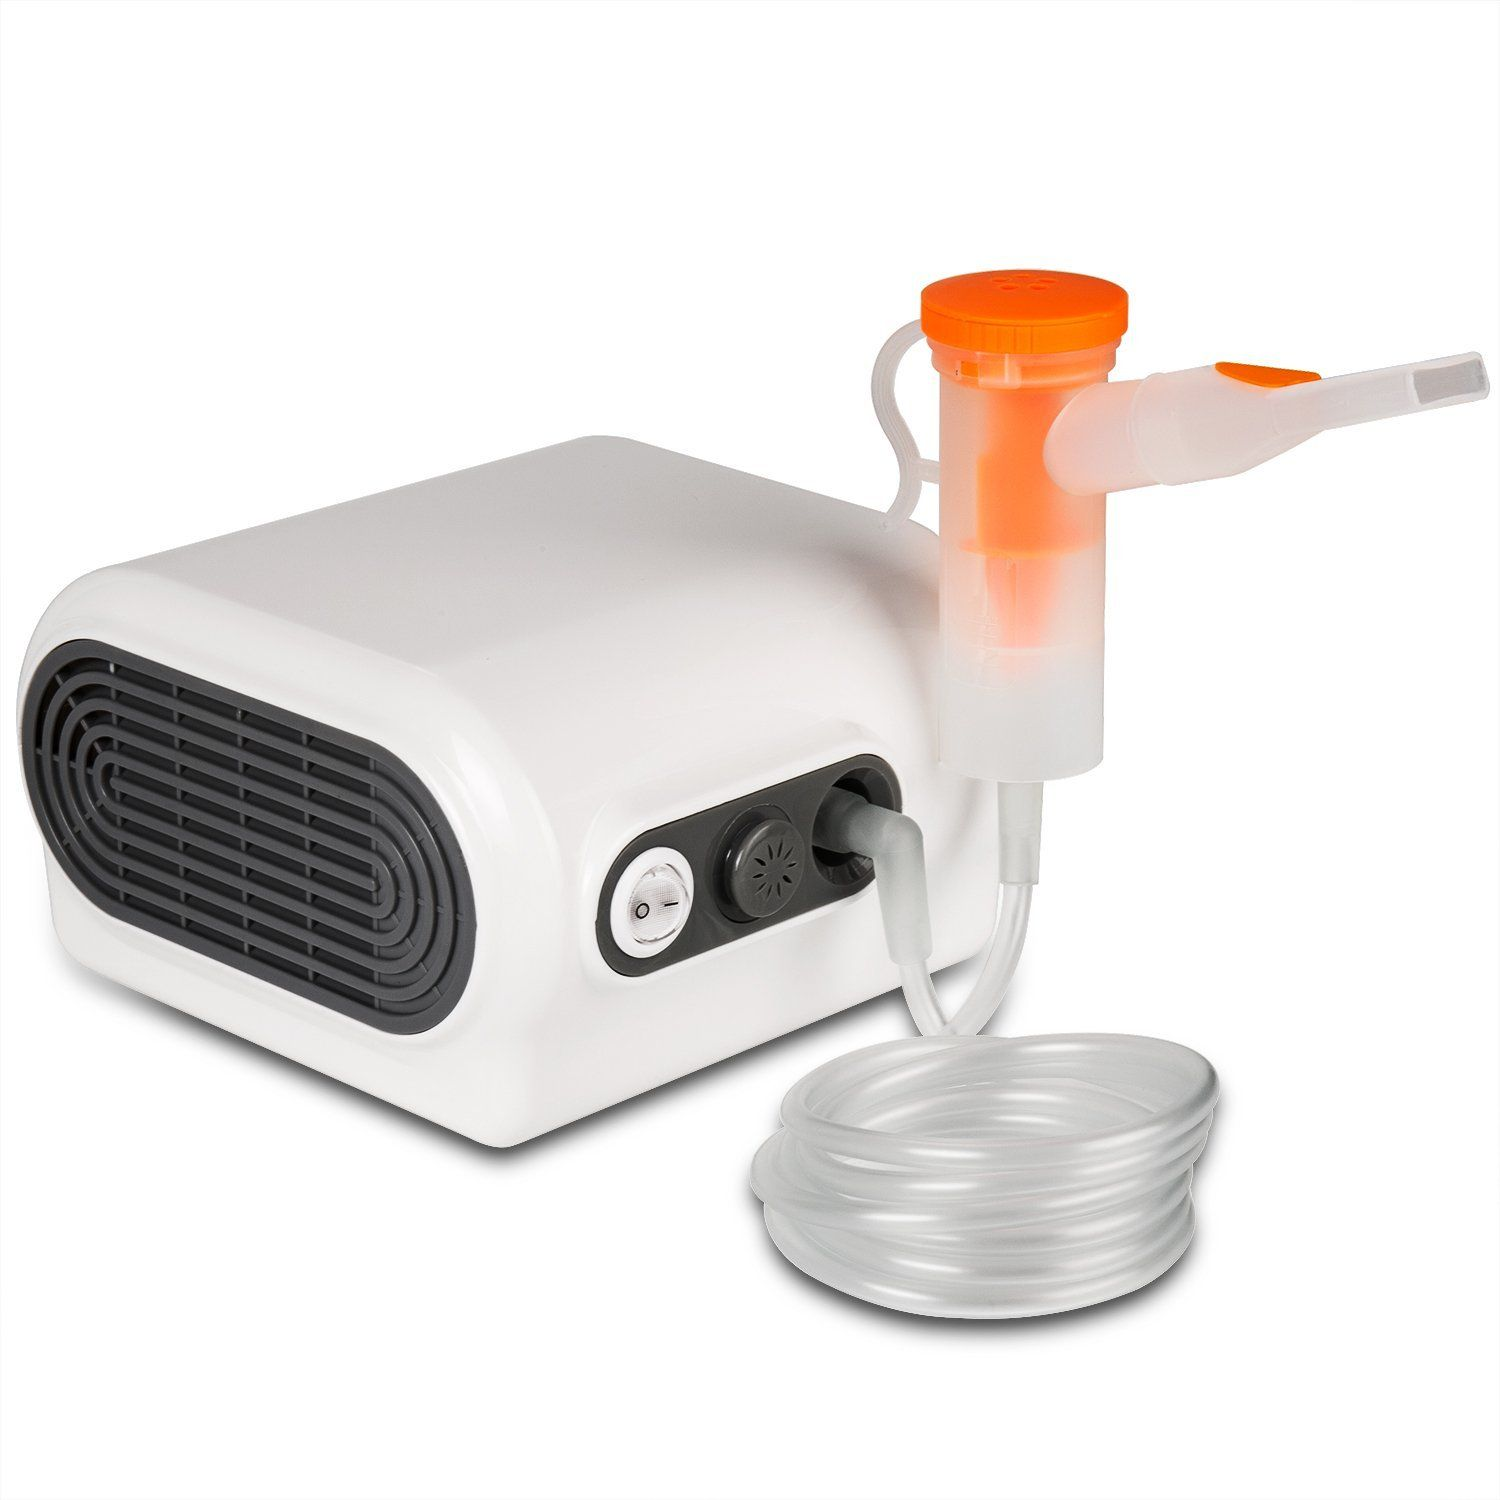 Best Nebulizer For Travel Budget Home Appliance Home